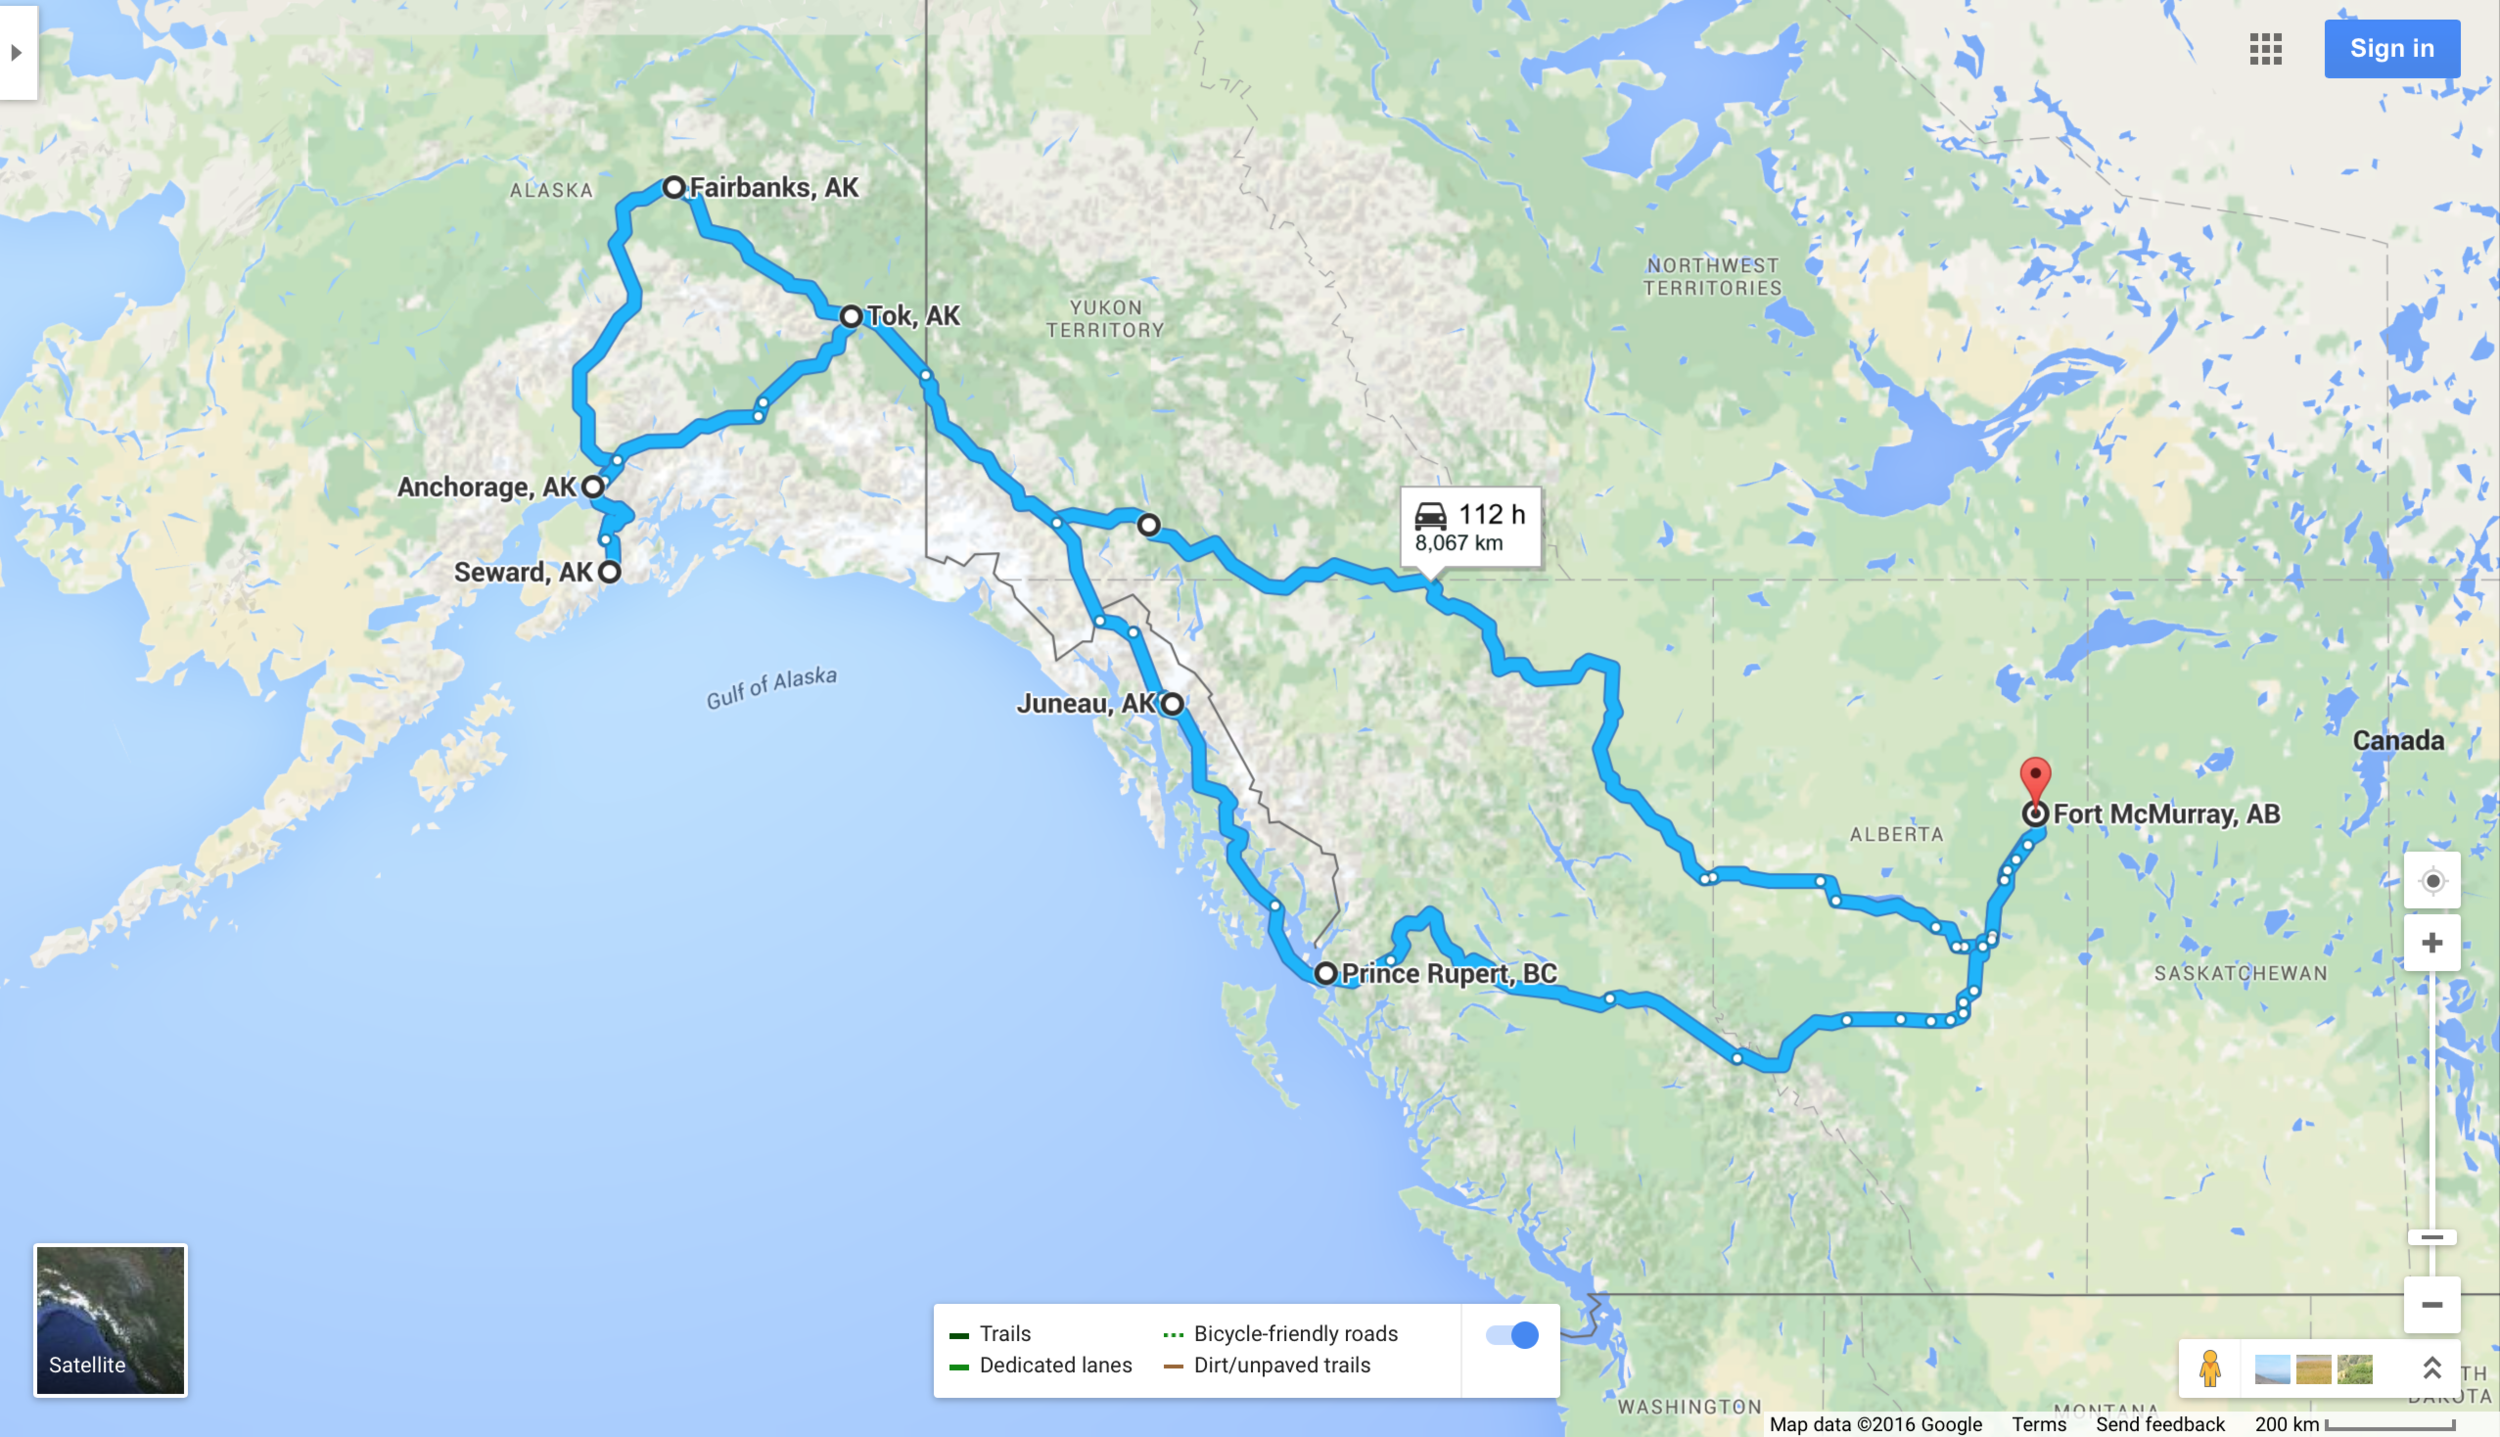 A few detours are missing but the majority of the trip is as posted.